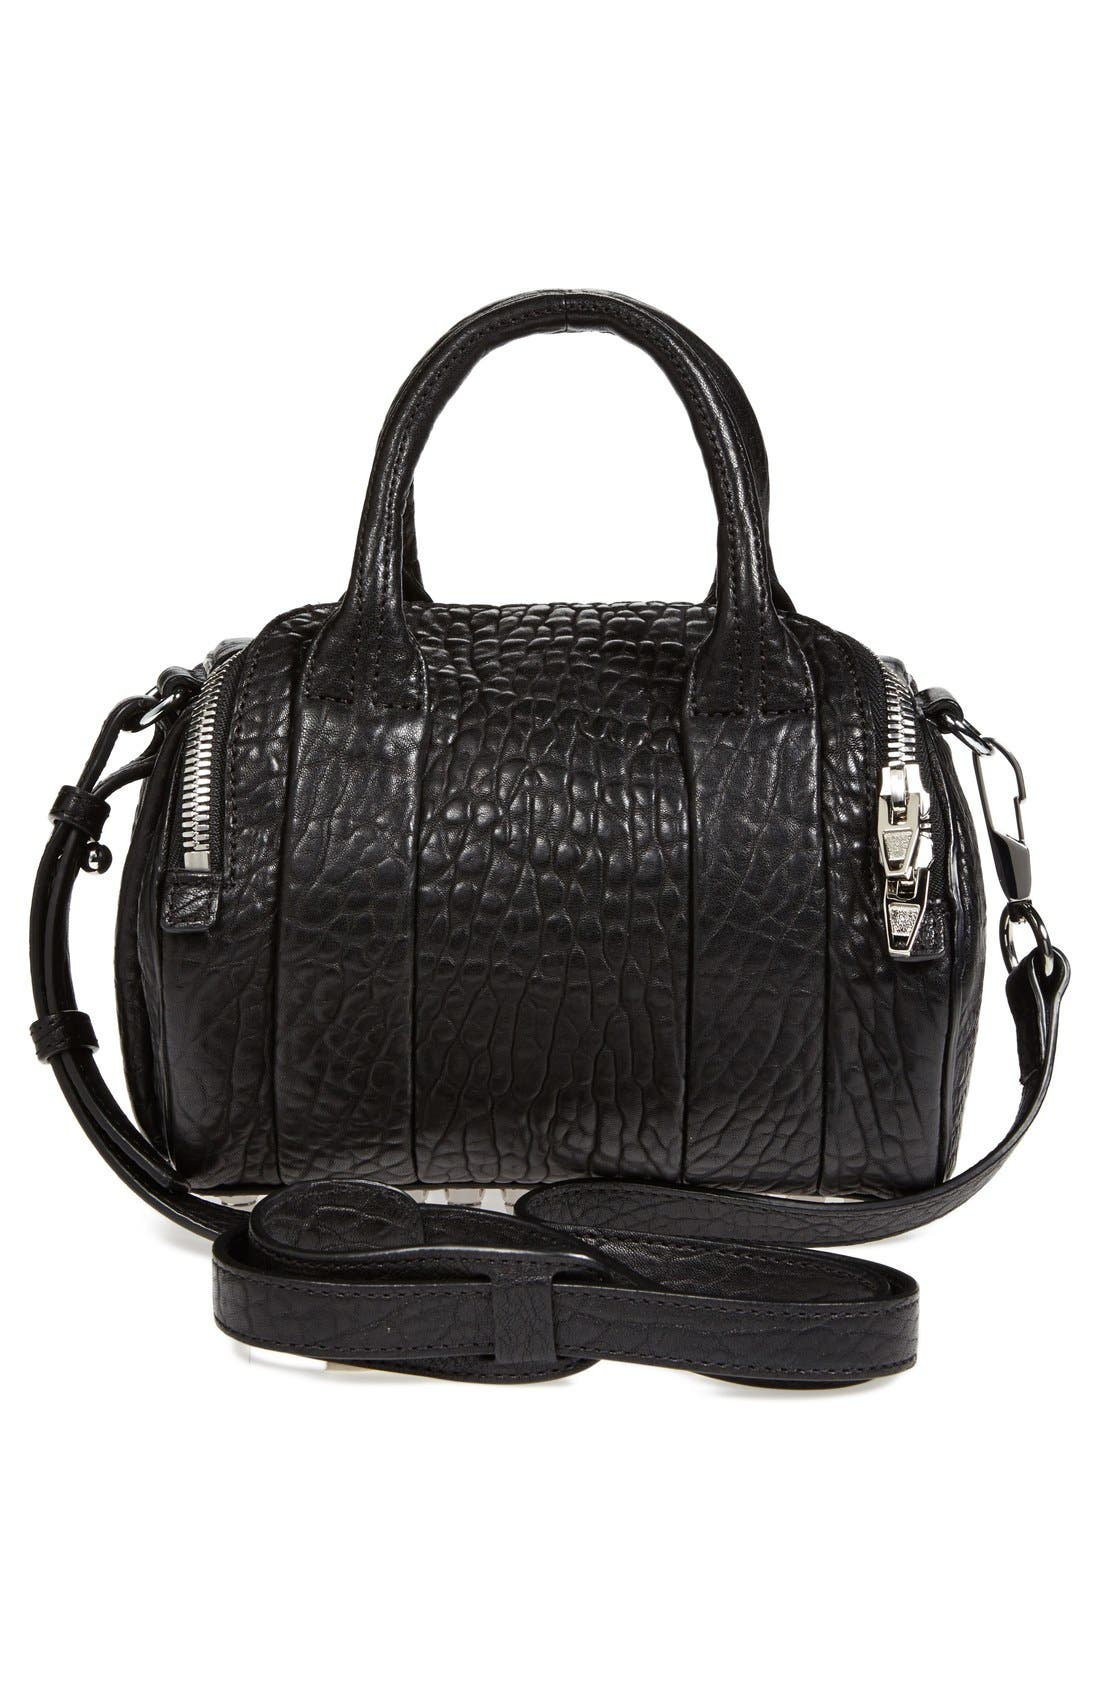 'Mini Rockie - Nickel' Leather Crossbody Satchel,                             Alternate thumbnail 2, color,                             001